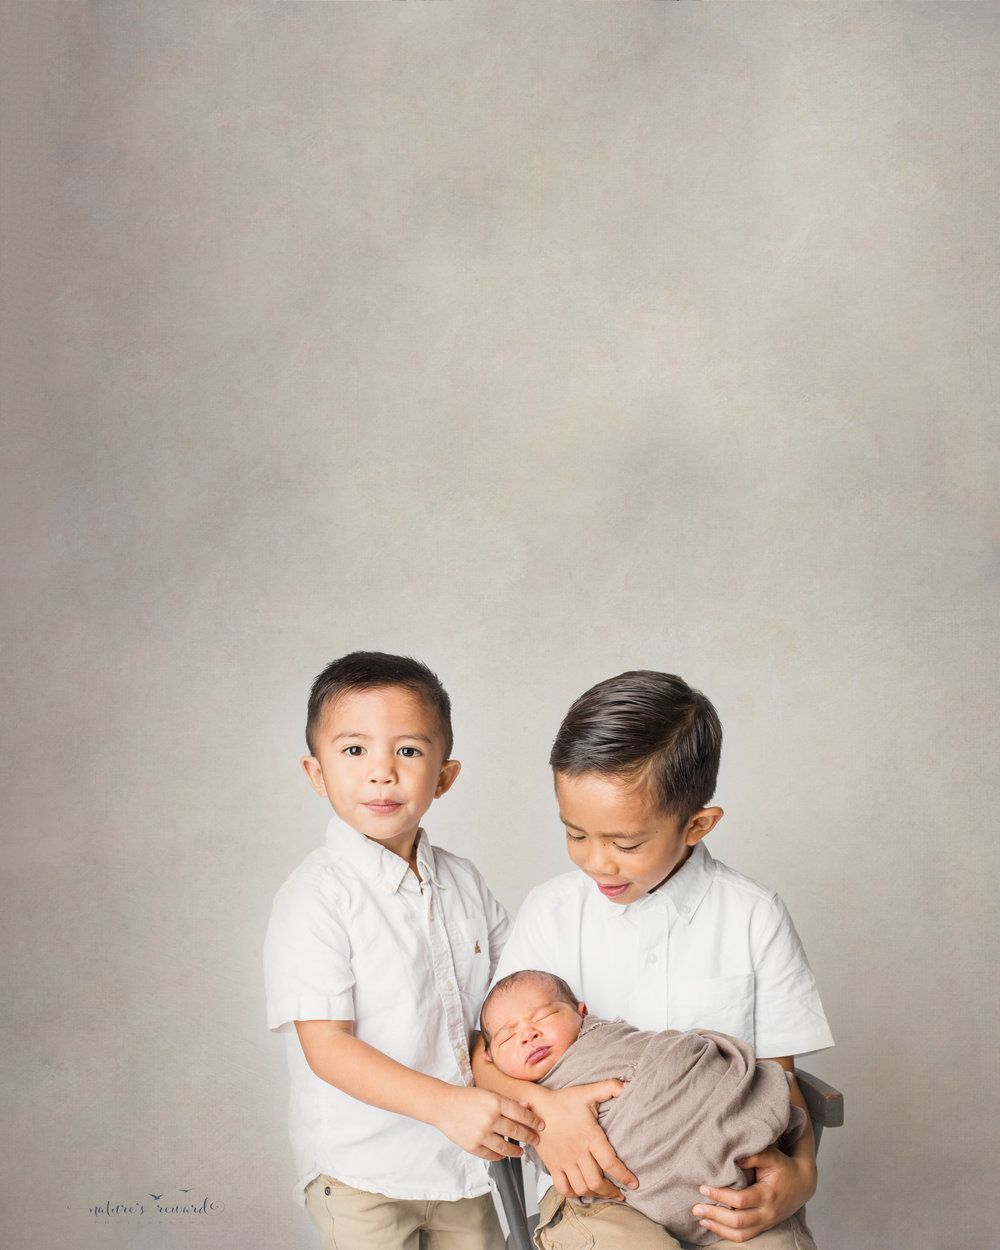 Borther's sibling portrait- a newborn photography portrait by Nature's Reward Photography